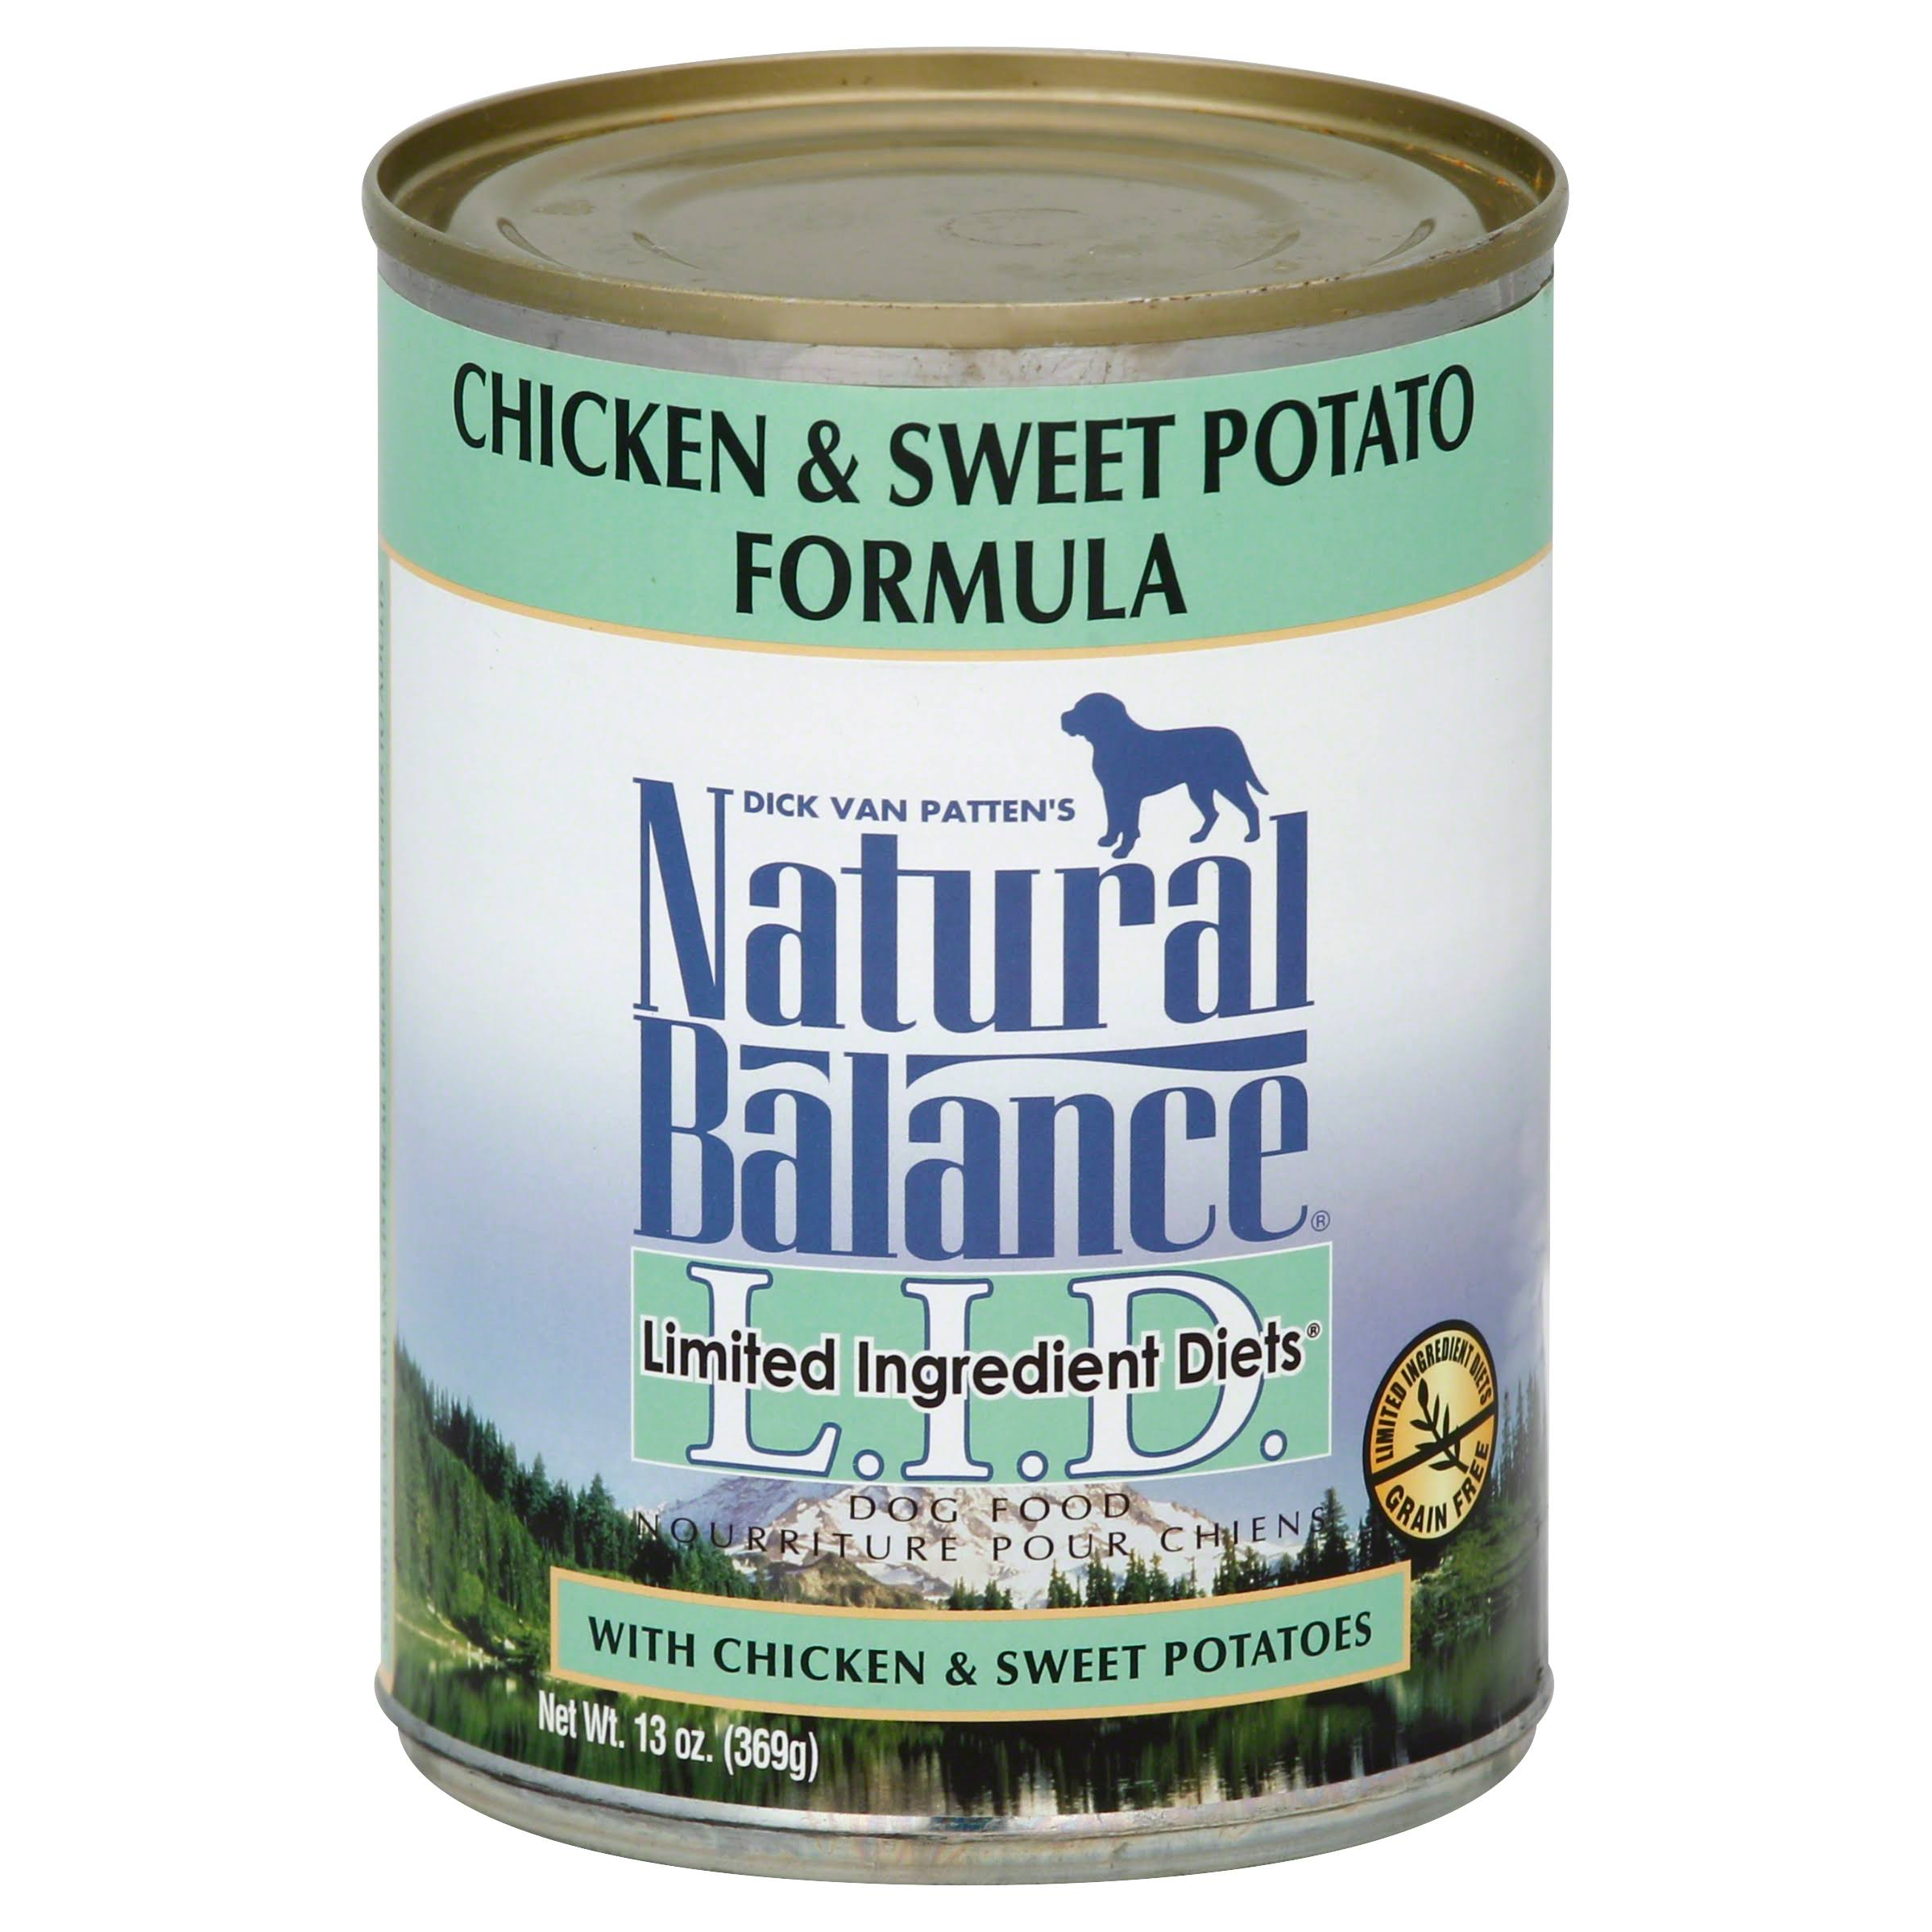 Natural Balance Limited Ingredient Diet Dog Food - Chicken and Sweet Potato